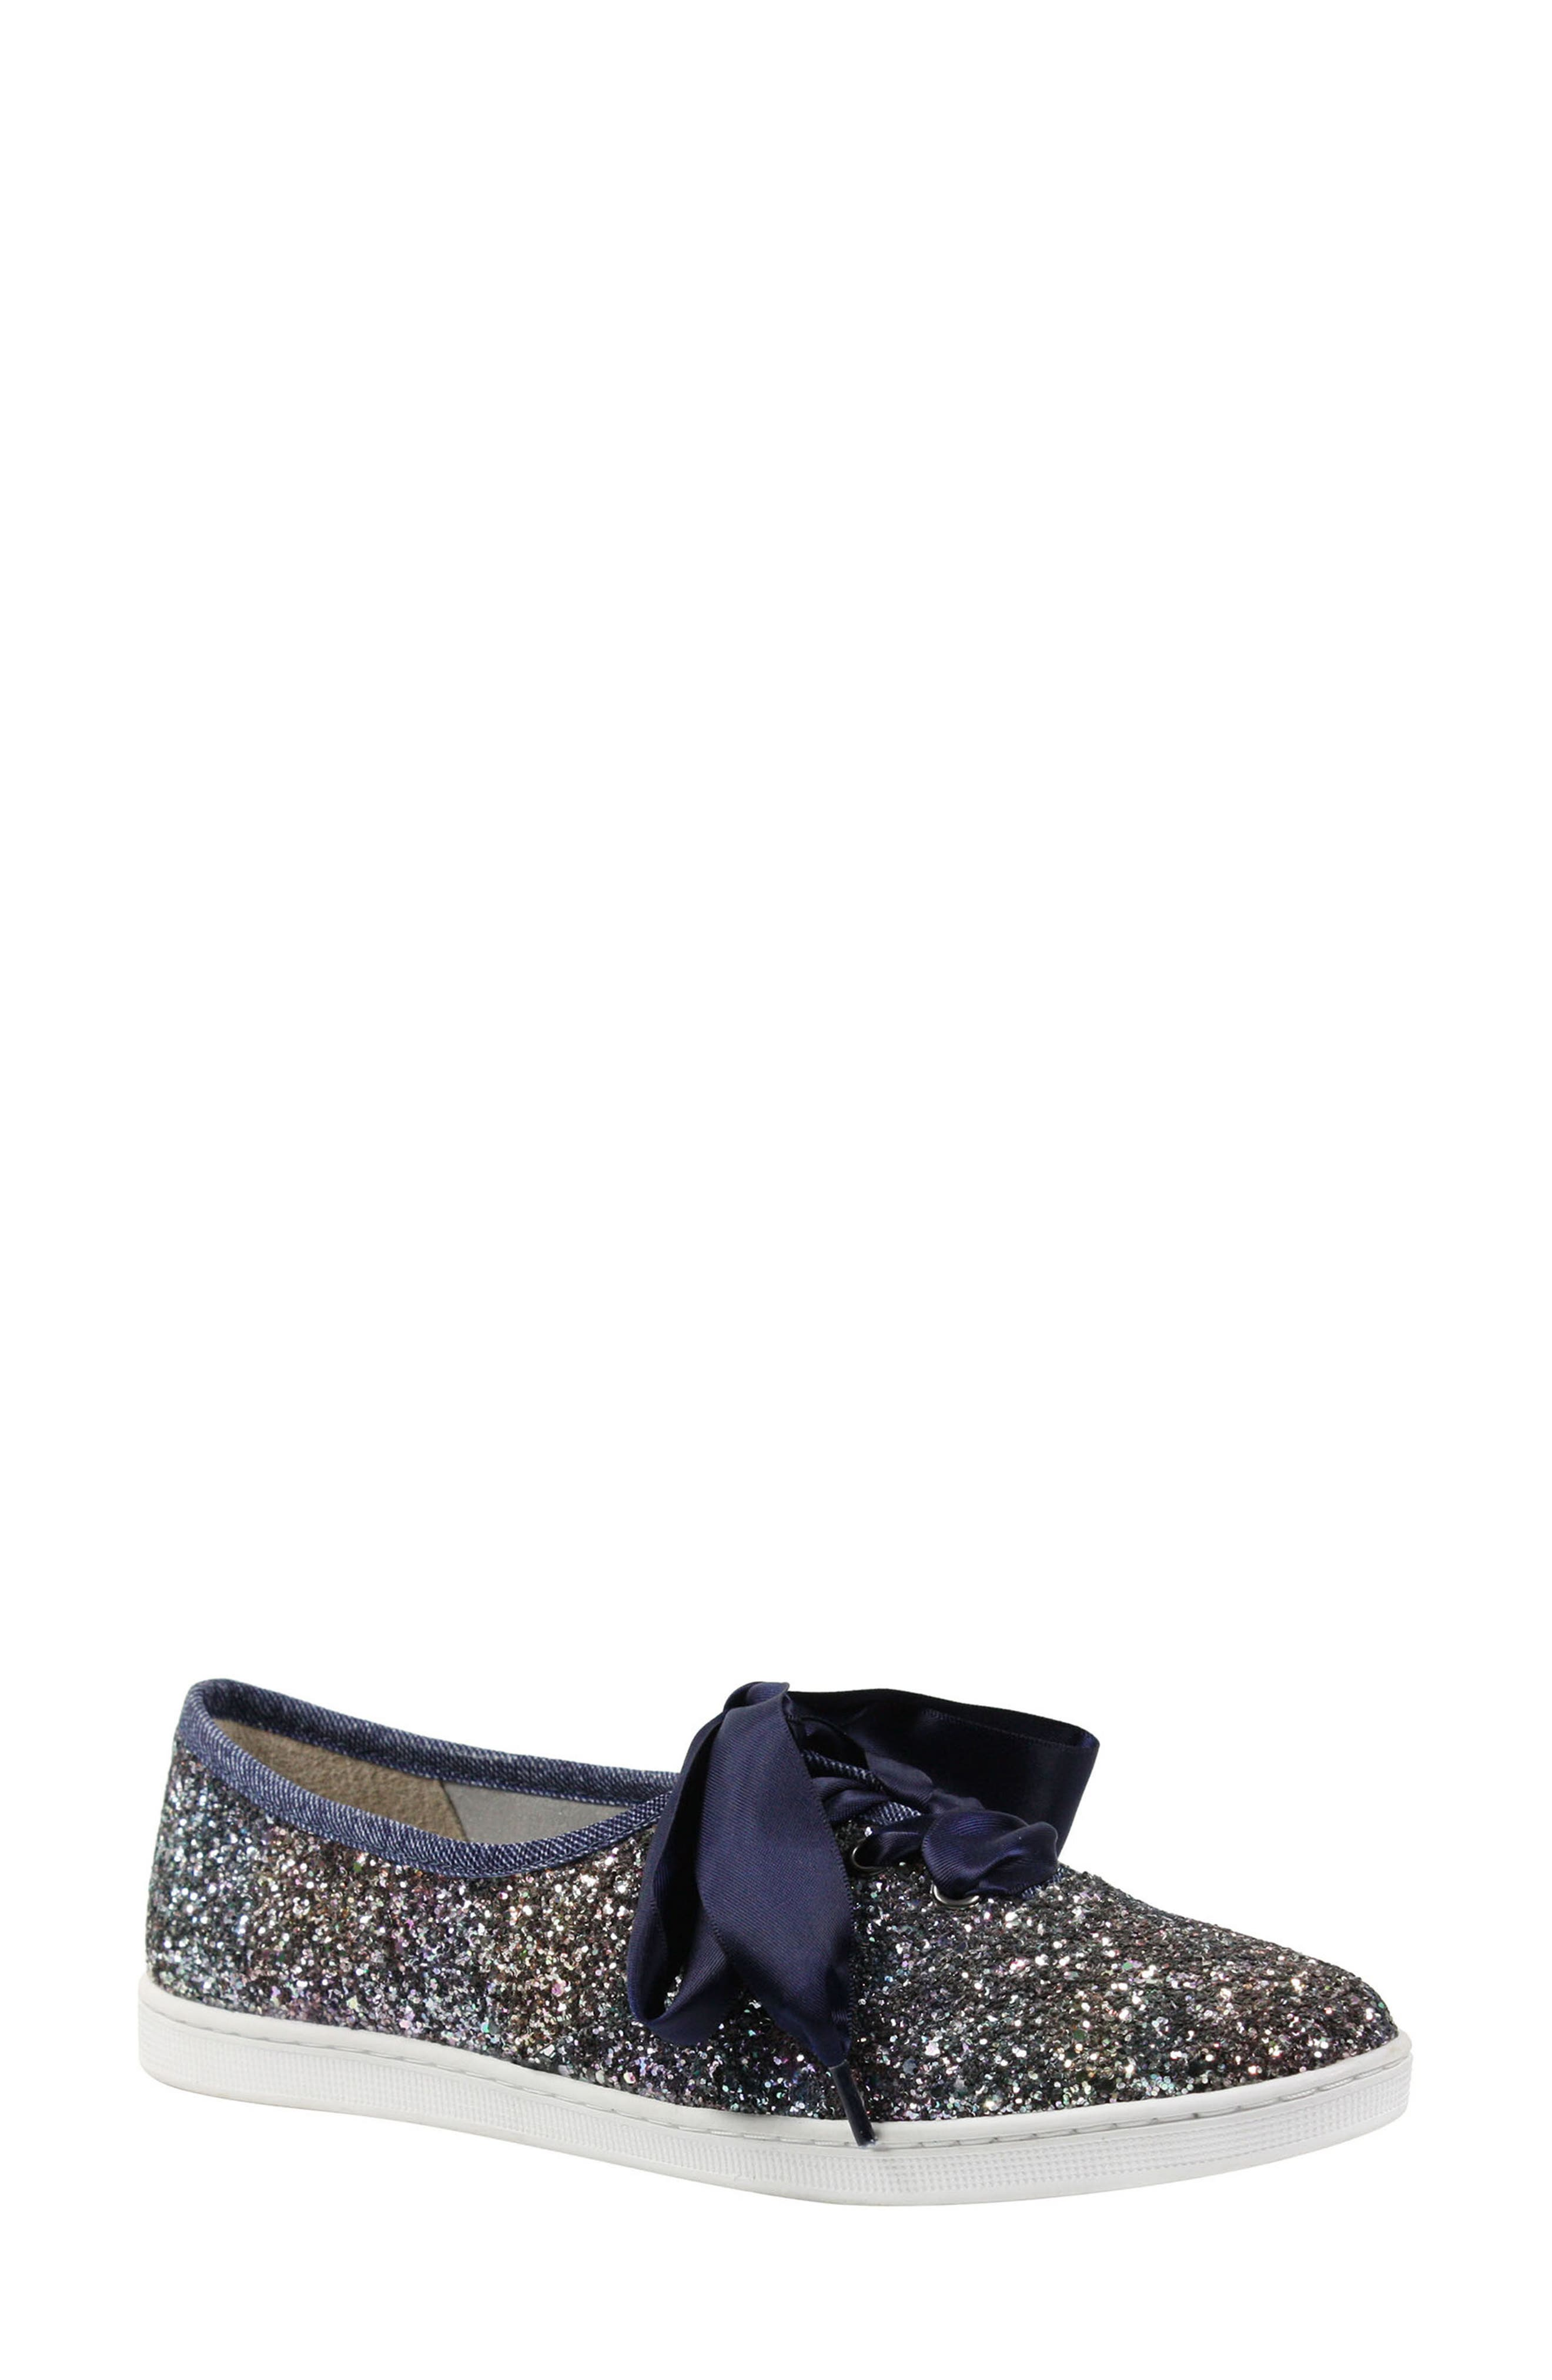 J. Reneé Shimmo Bow Sneaker (Women)